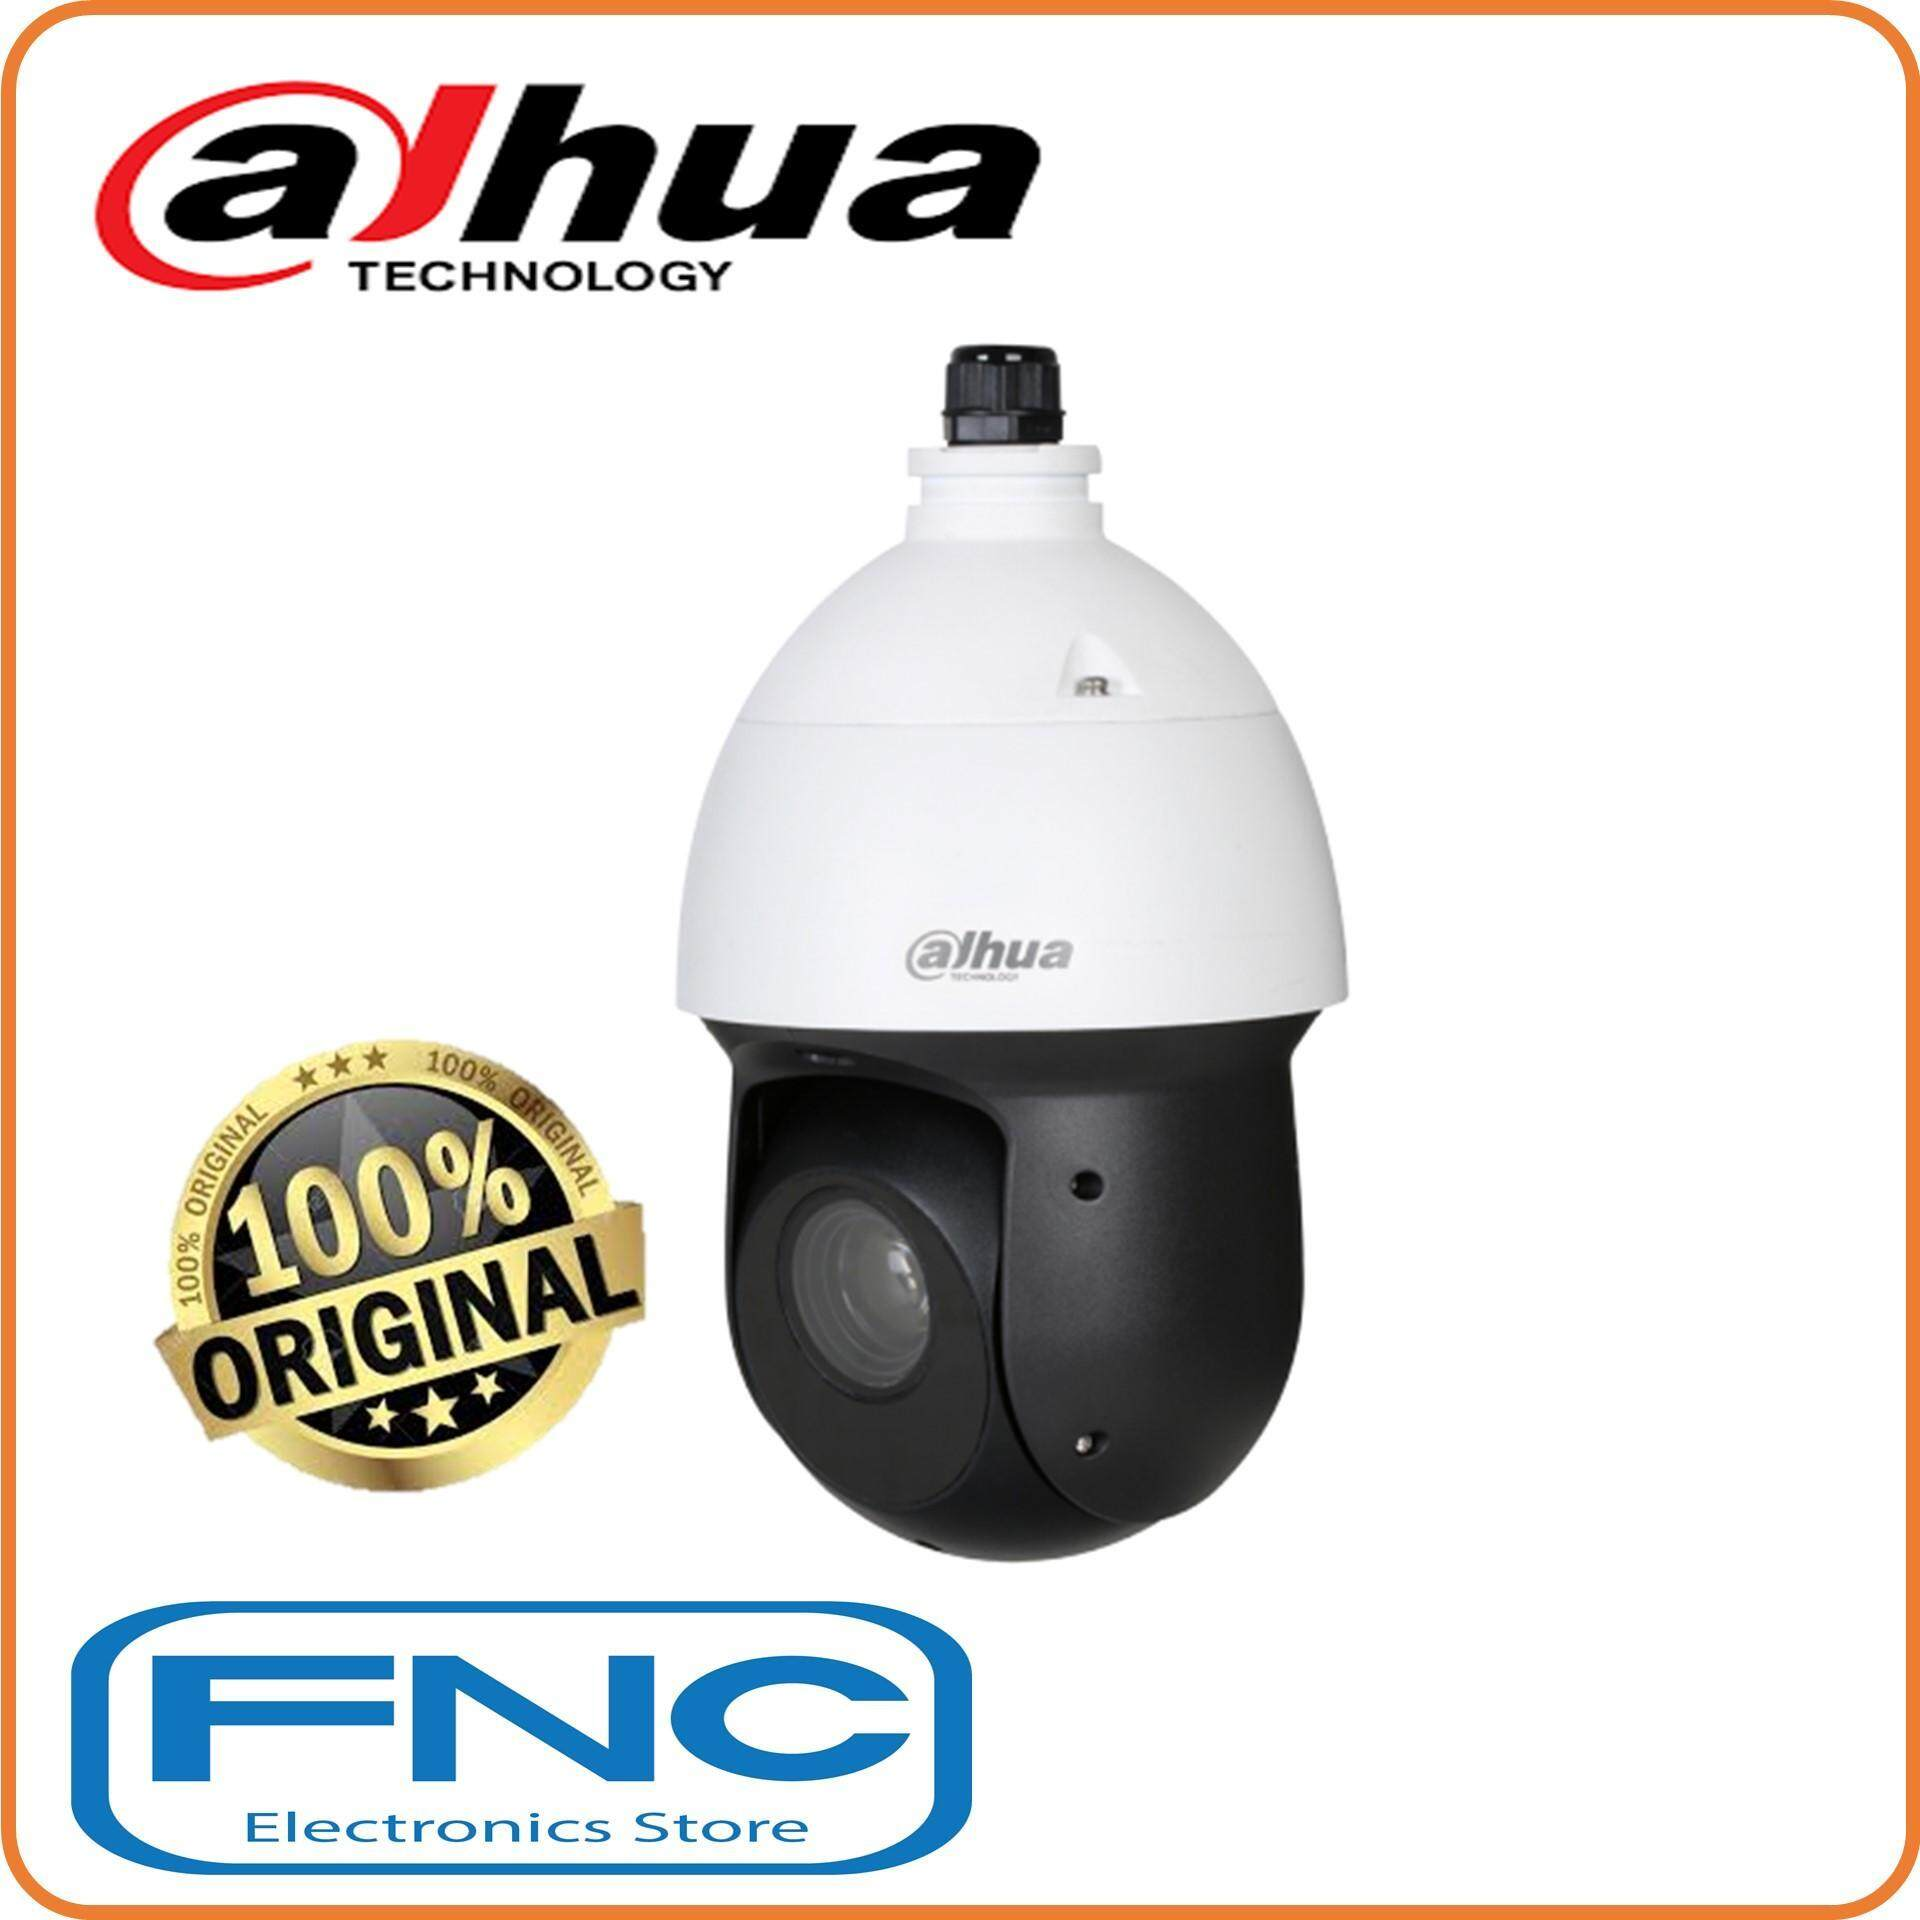 Dahua Sd49225i-Hc Analog 2mp 25x True Wdr Starlight 100m Ir 4 In 1 Ptz Hdcvi Camera By Fnc Electronics Store.